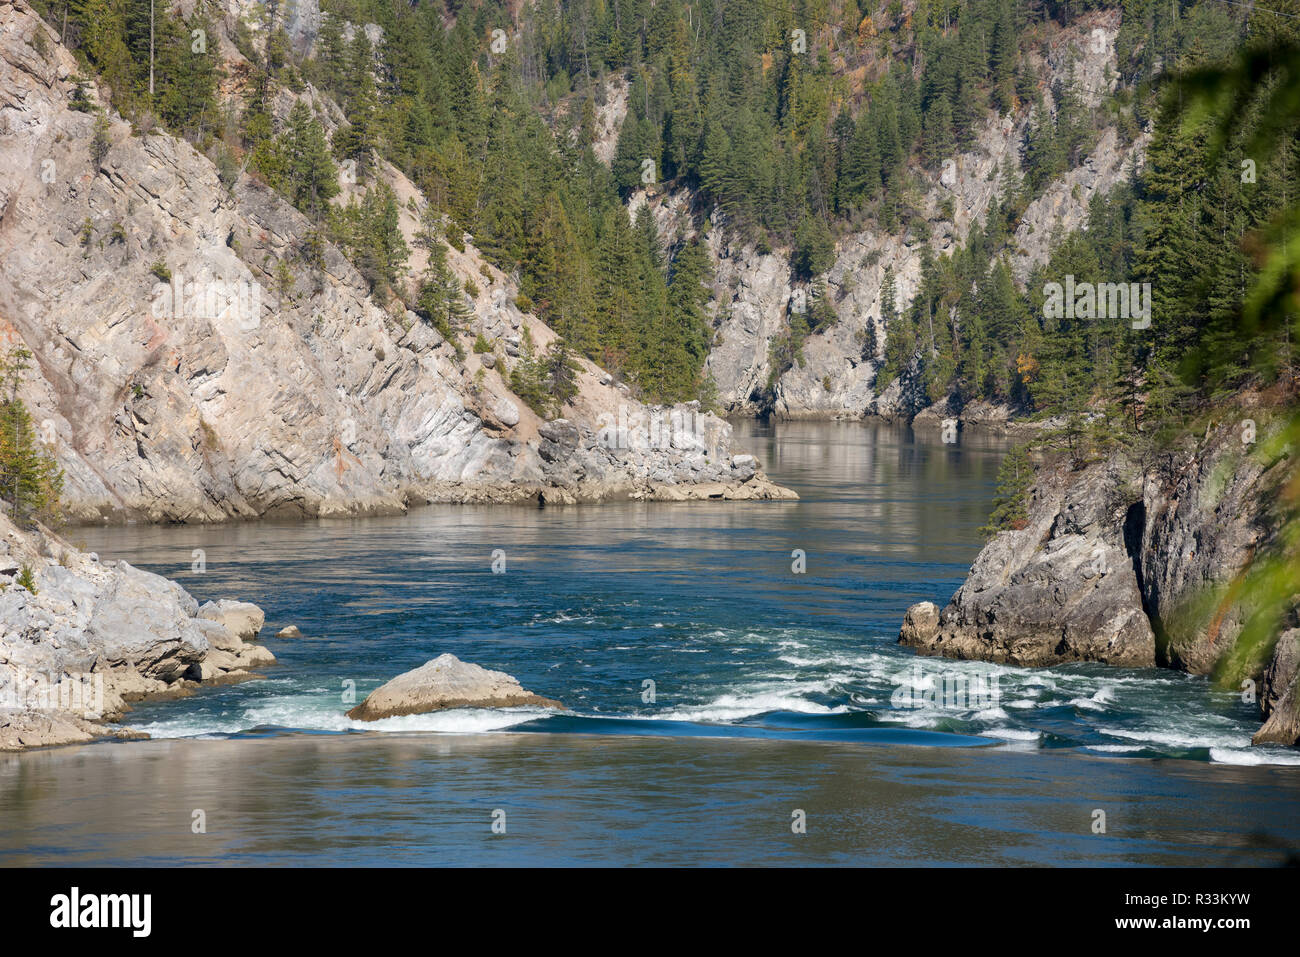 A remaining rapid at the site of the mainly submerged Metaline Falls on the Pend Oreille River, Idaho. - Stock Image